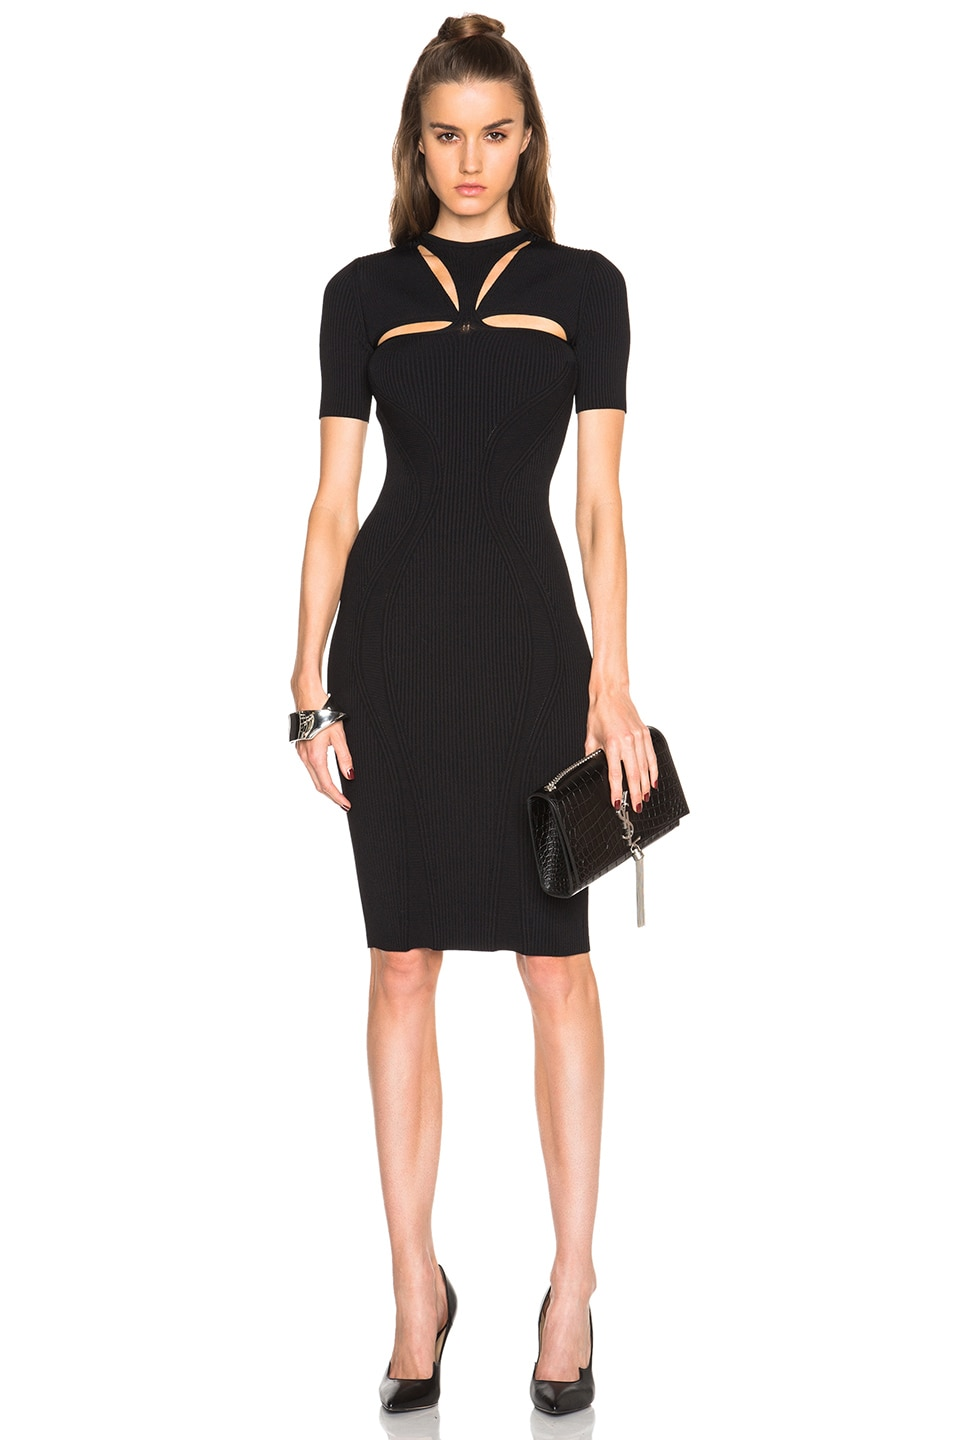 dffc63b136 Image 1 of Alexander McQueen Cut Out Neck Pencil Dress in Black